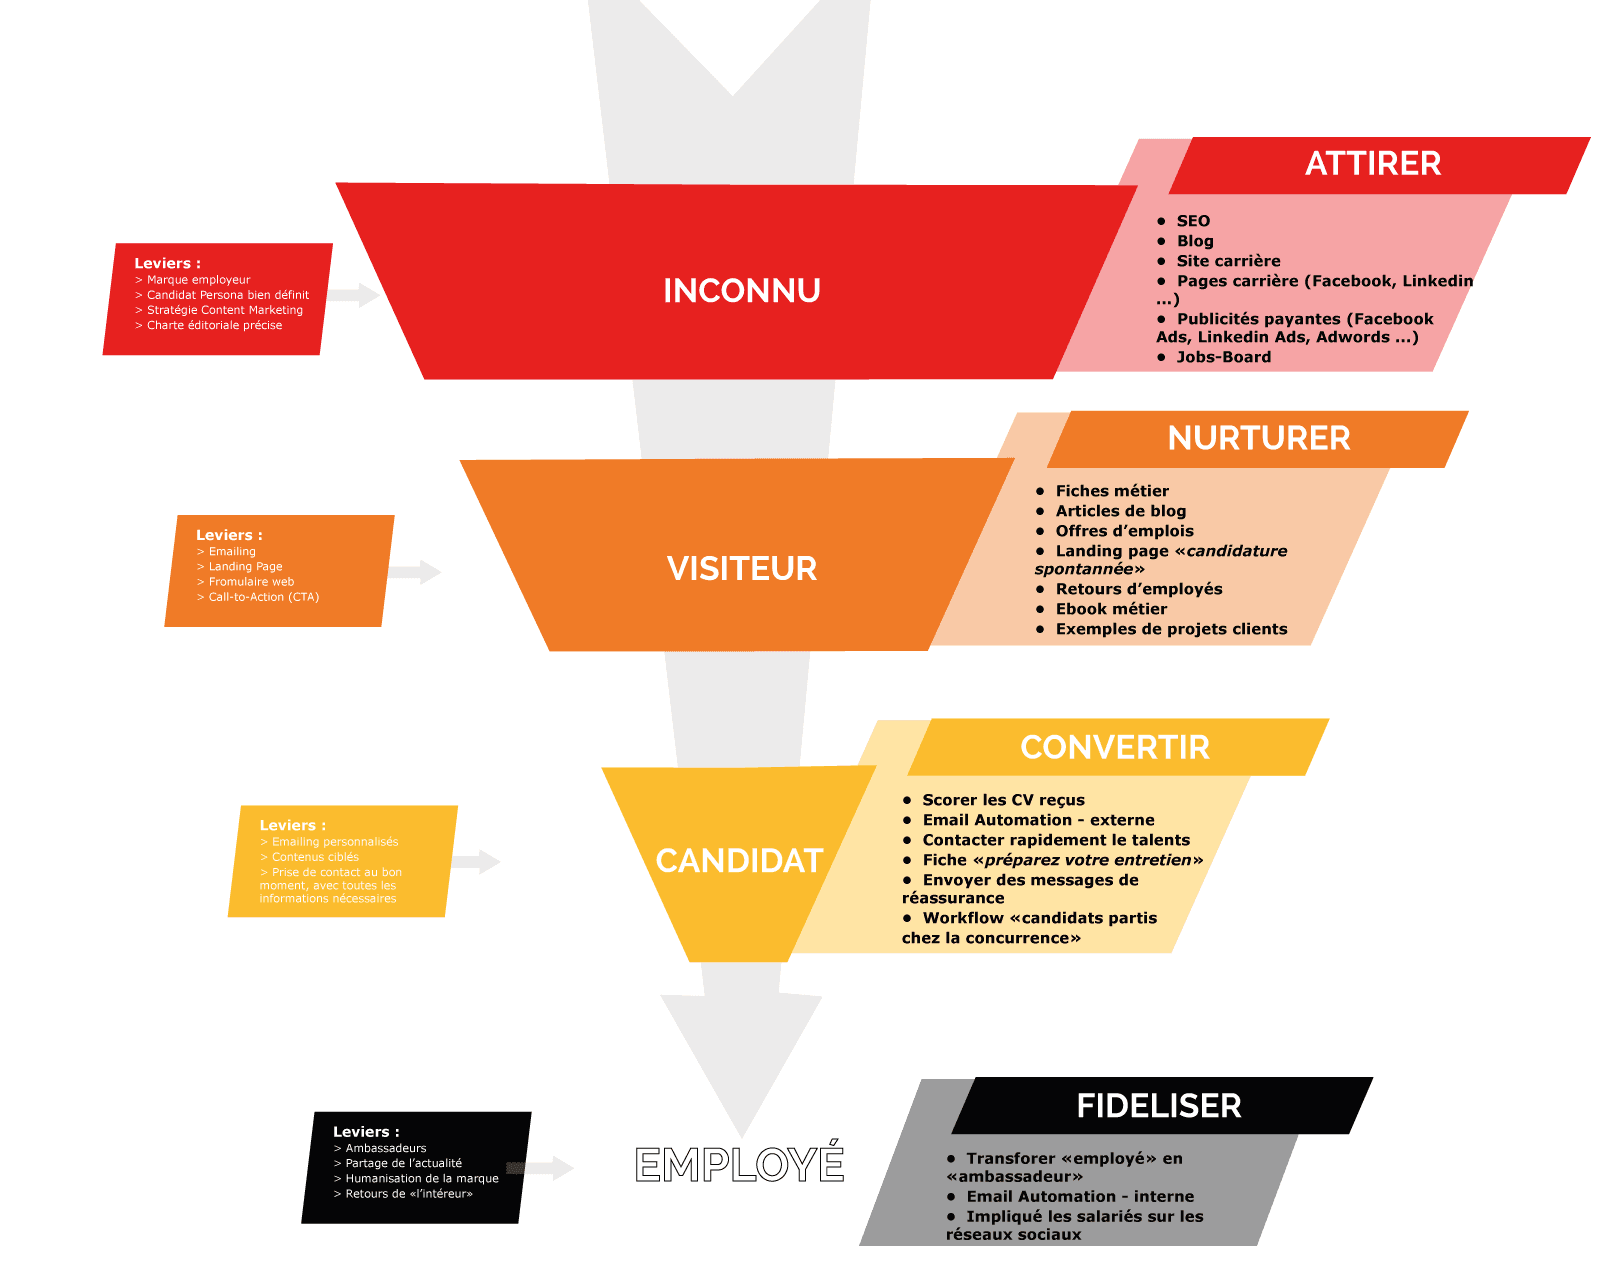 Process d'inbound recruiting - le tunnel de conversion